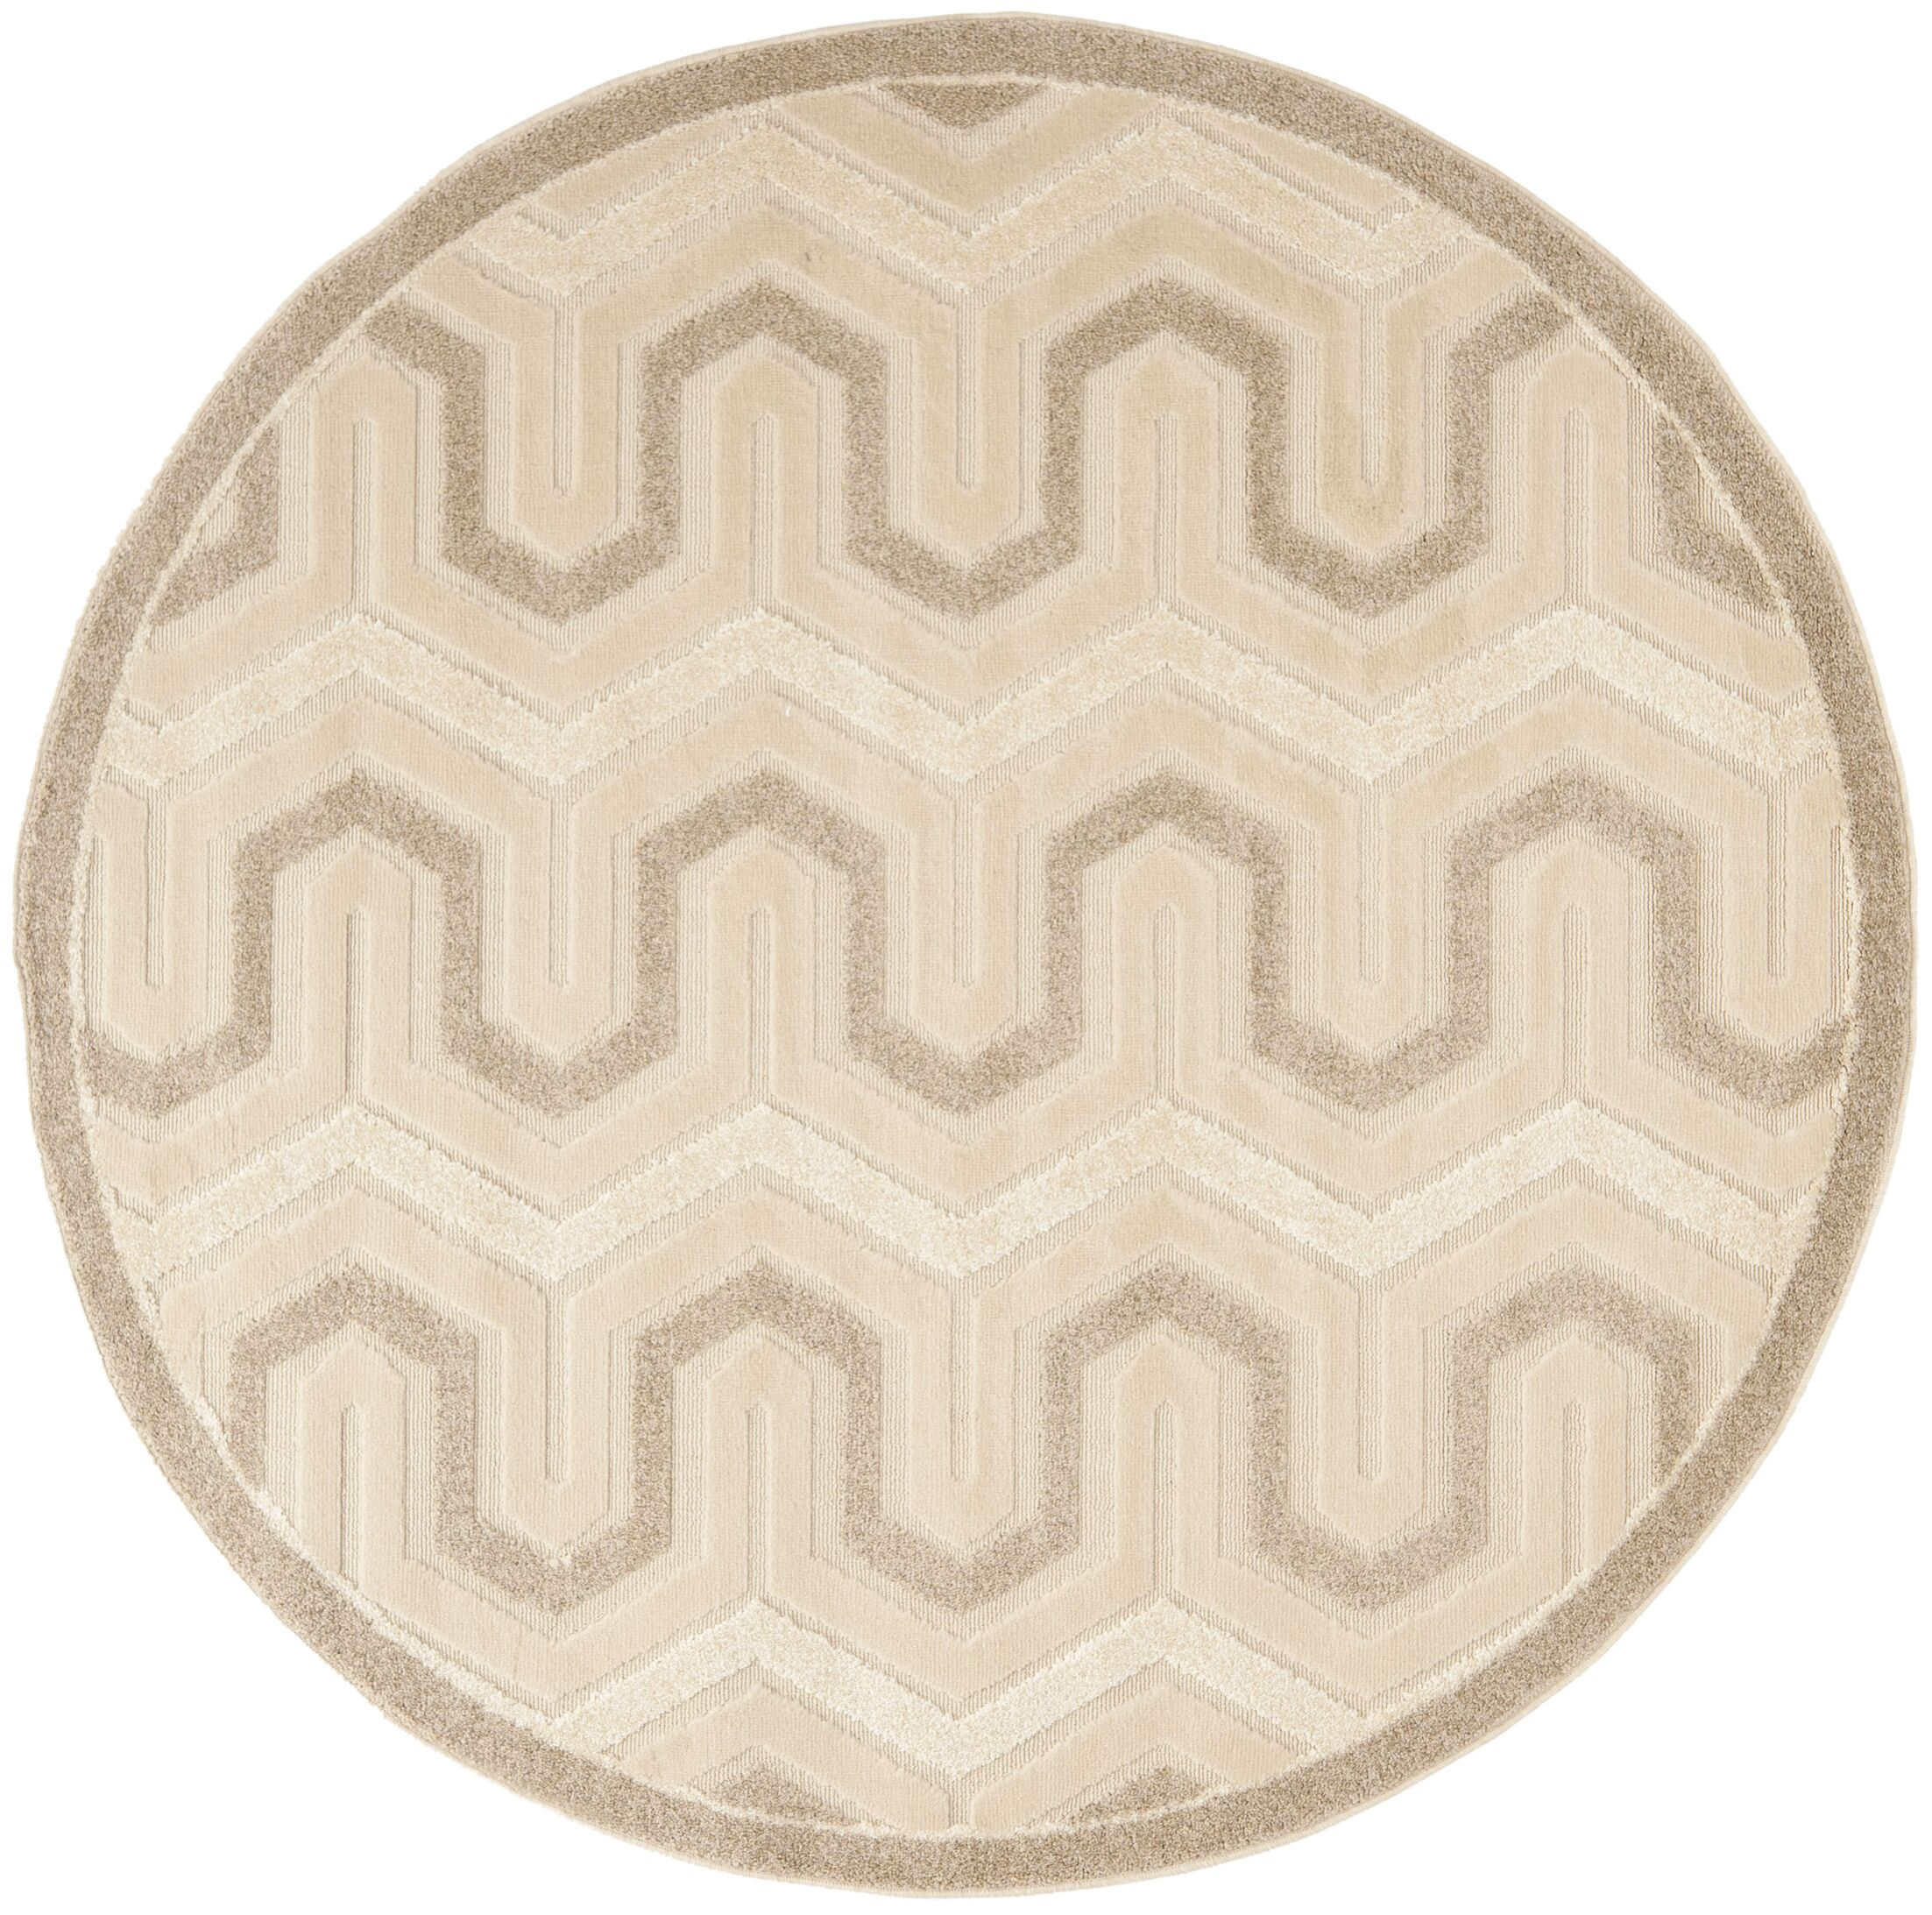 York Cream Area Rug Rug Size: Round 6'